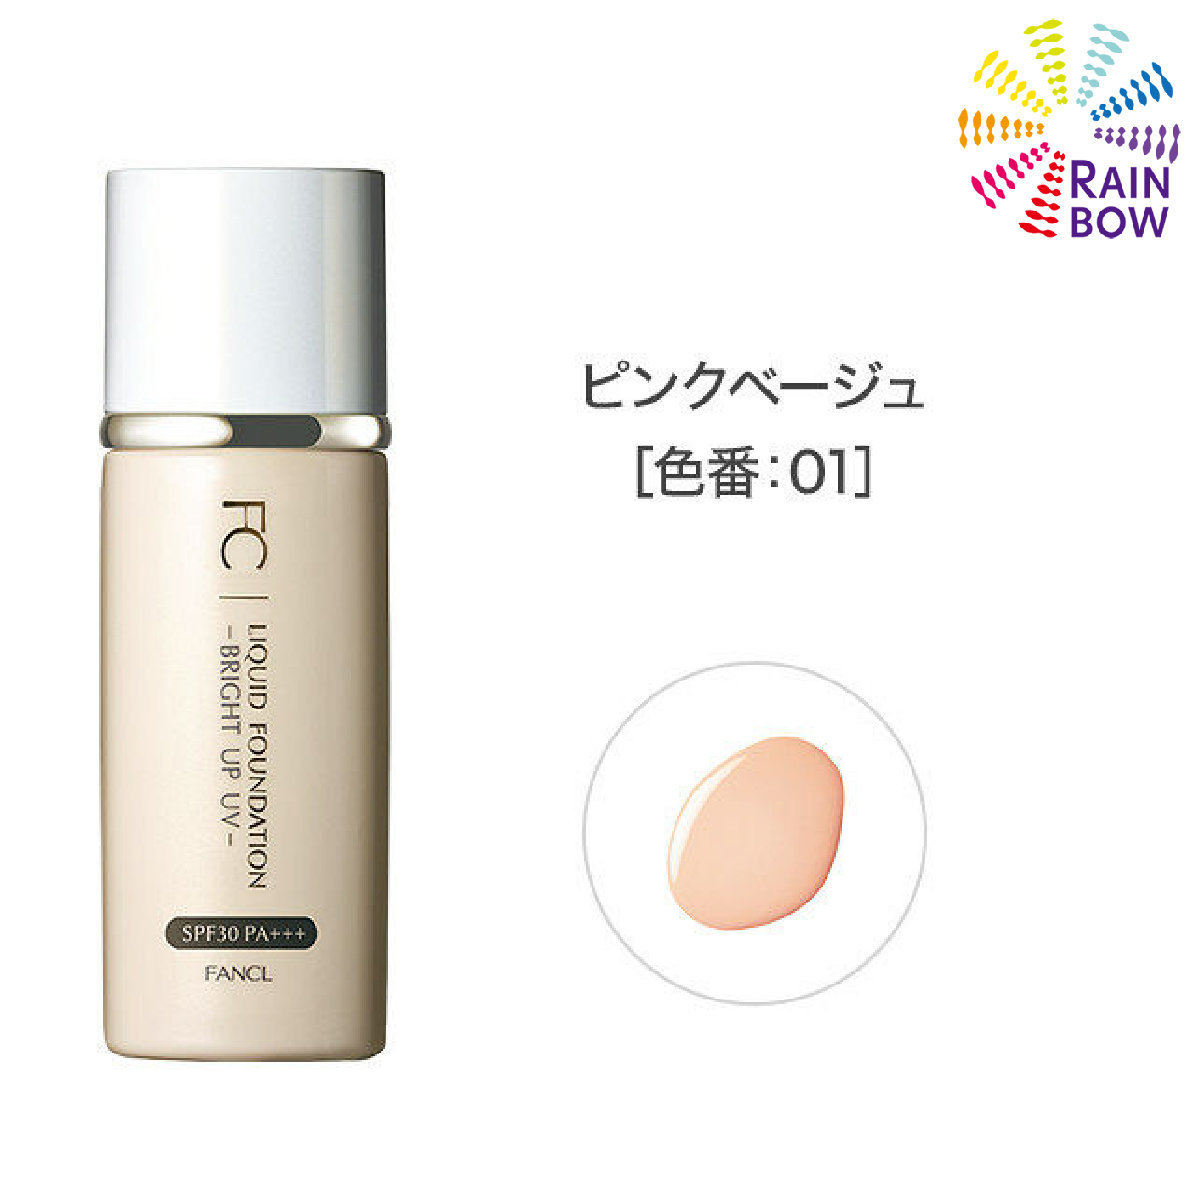 Liquid Foundation – BRIGHT UP UV – 01  SPF 30 PA +++ (27ml) (Pink Beige)(parallel import) (84876)